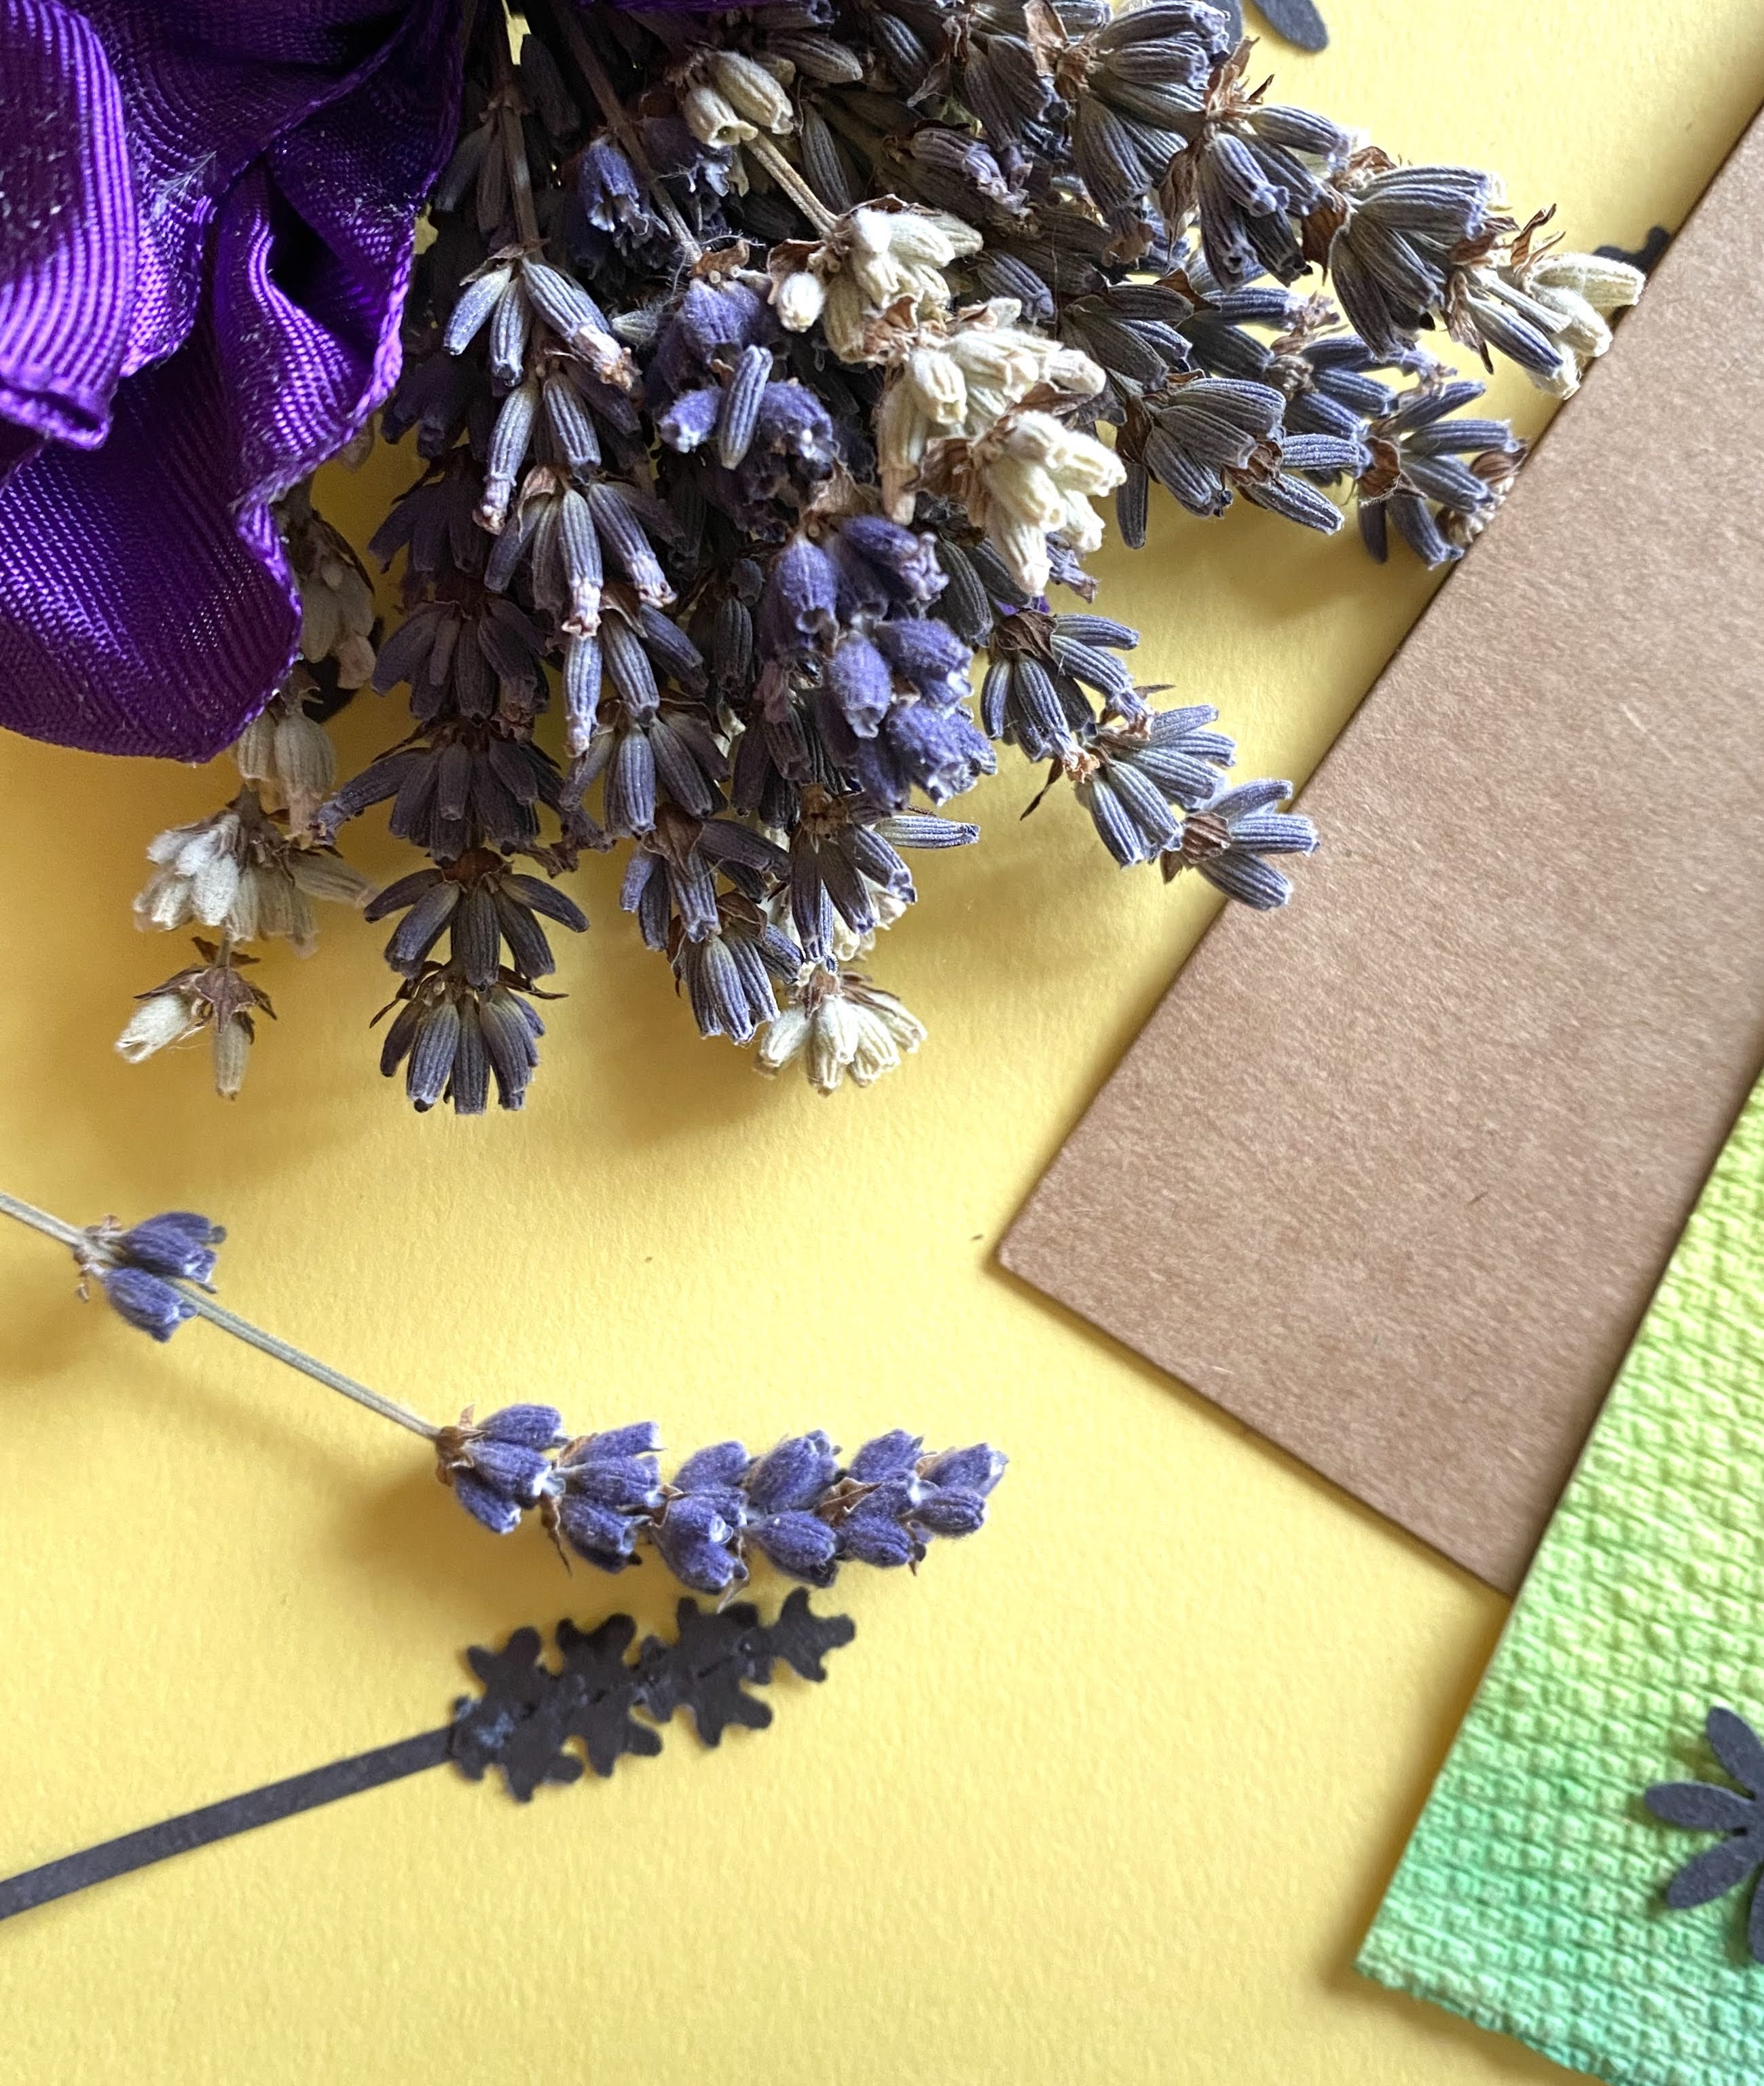 Dried lavender next to a paper lavender